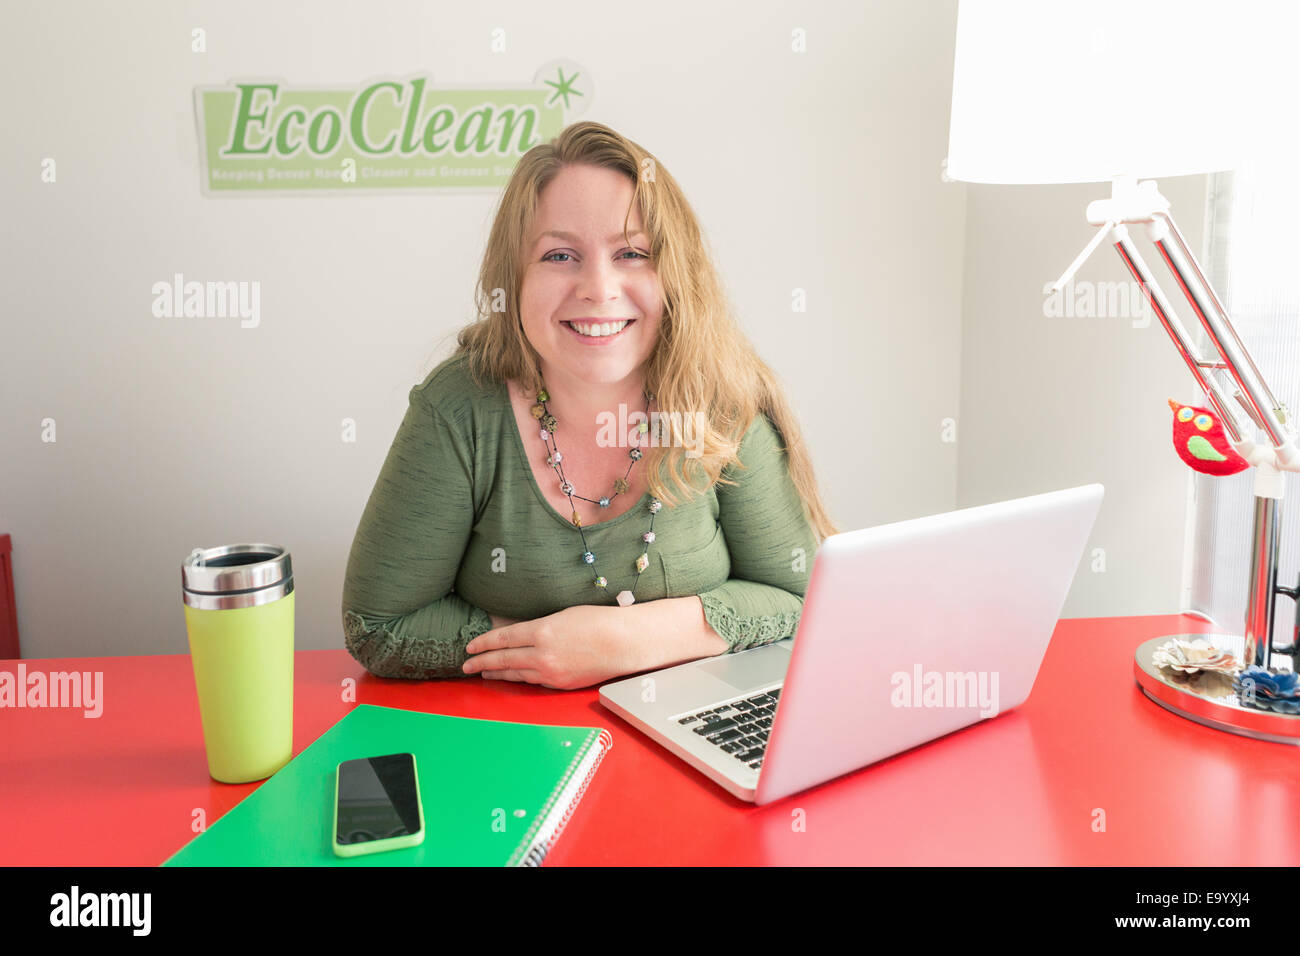 Small business owner of green cleaning company - Stock Image